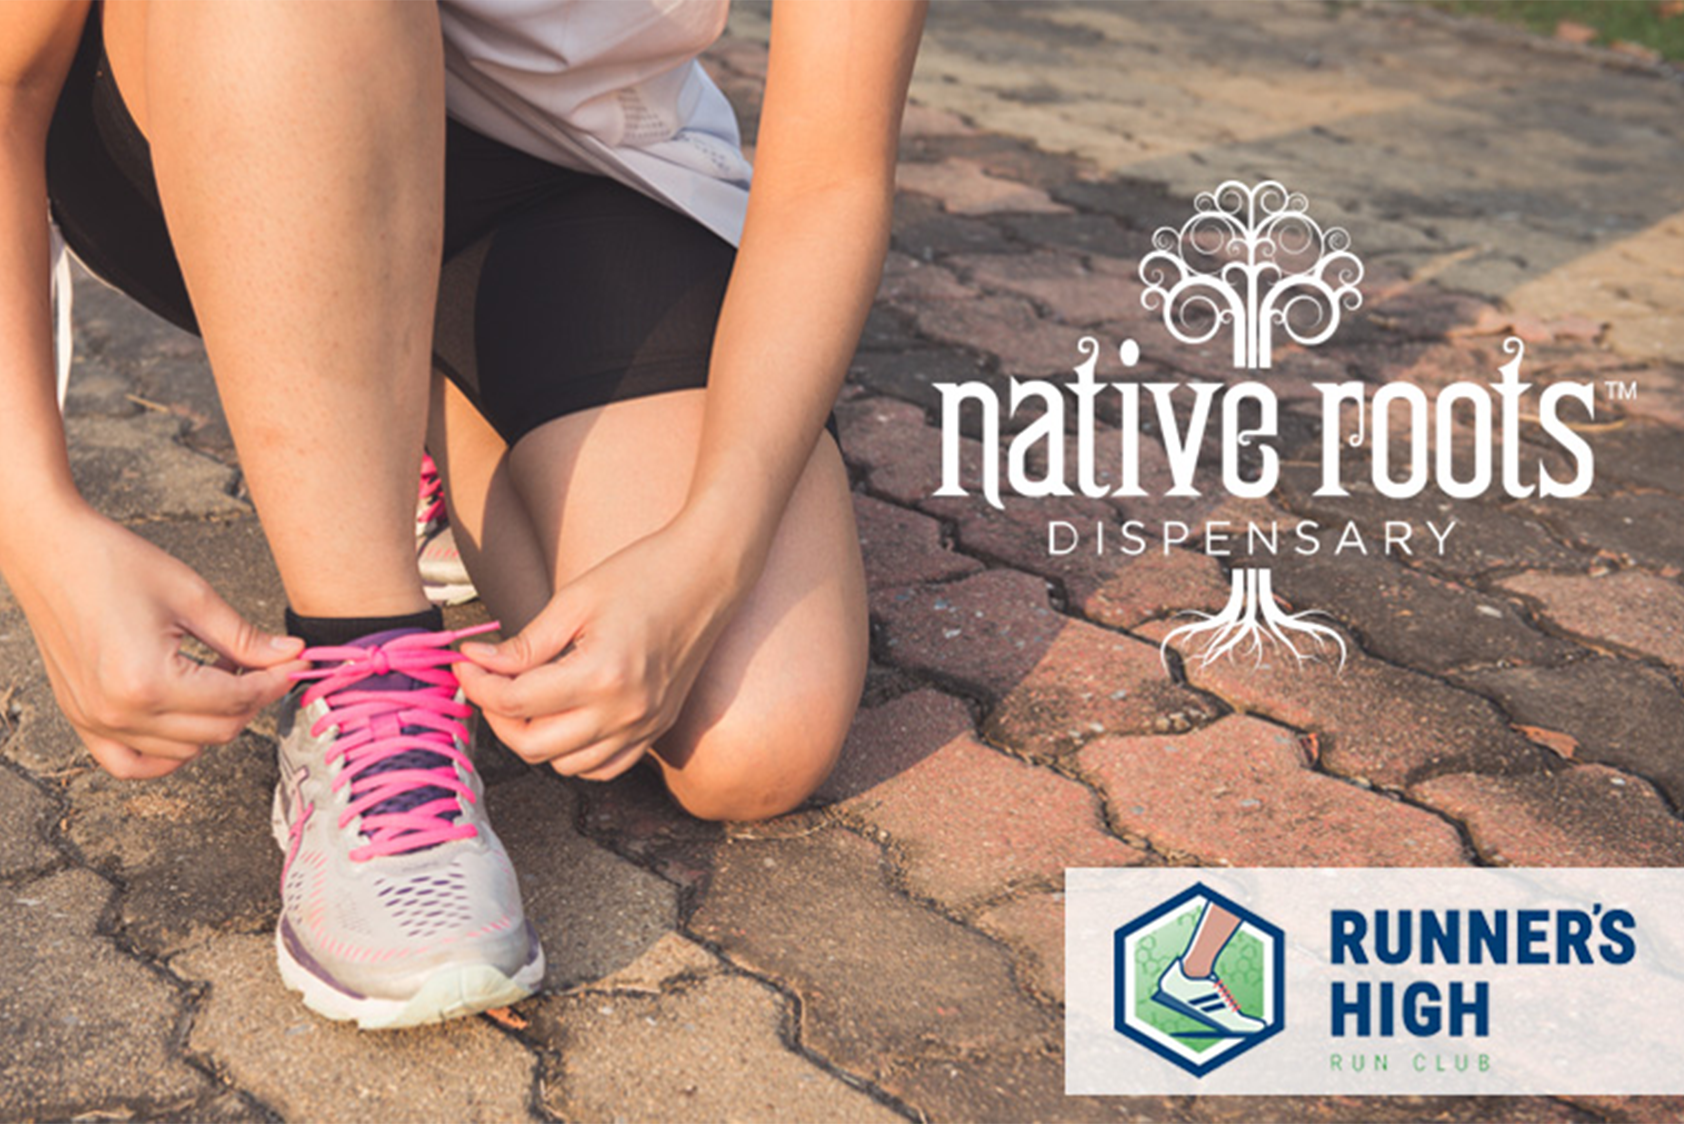 Native Roots Runner's High Club where cannabis and runner enthusiasts unite